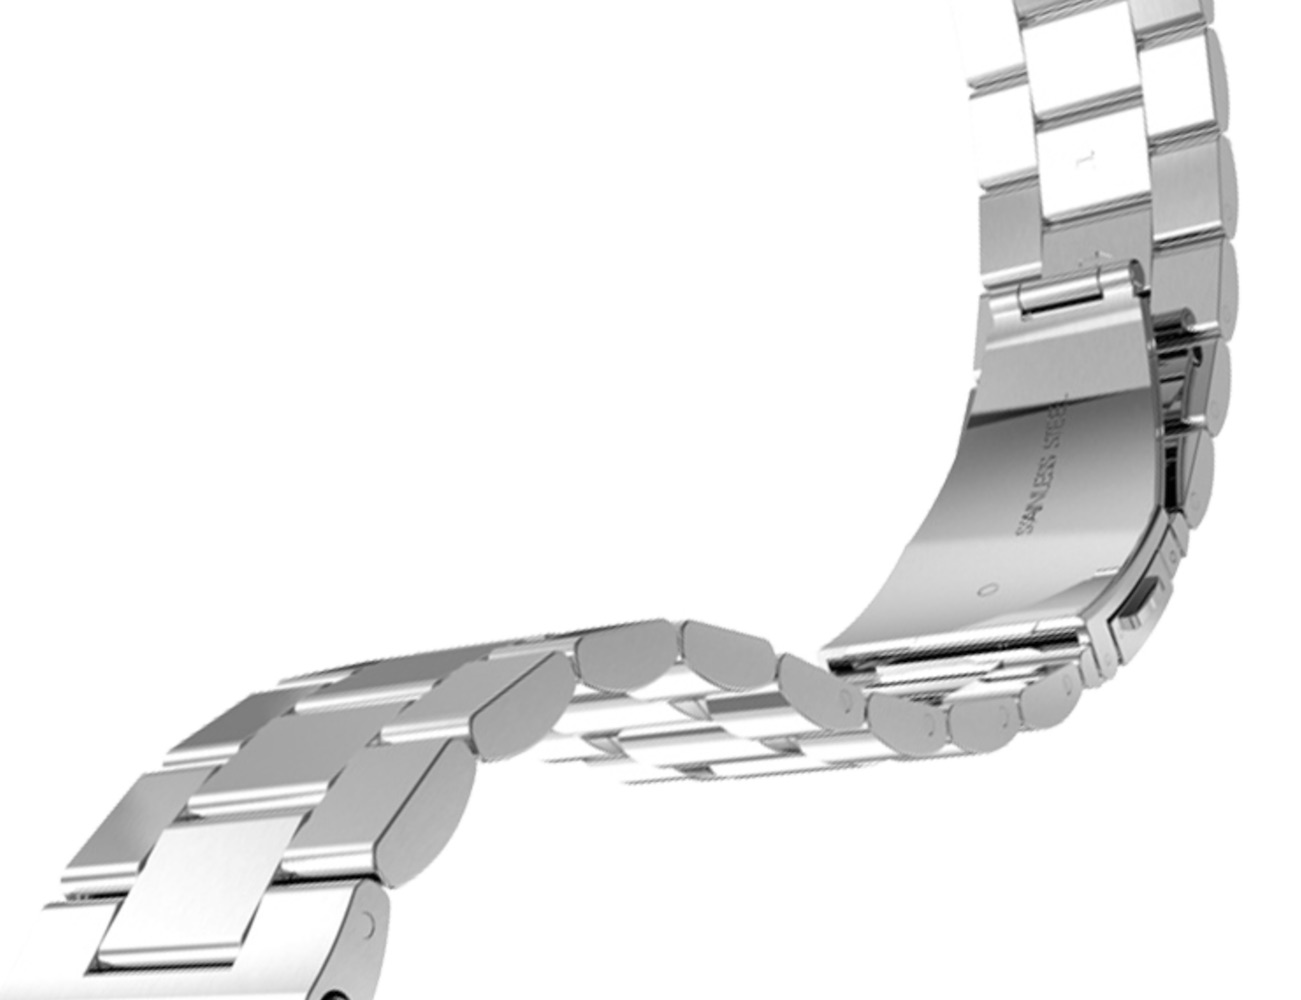 stainless-steel-band-for-apple-watch-by-hoco-03